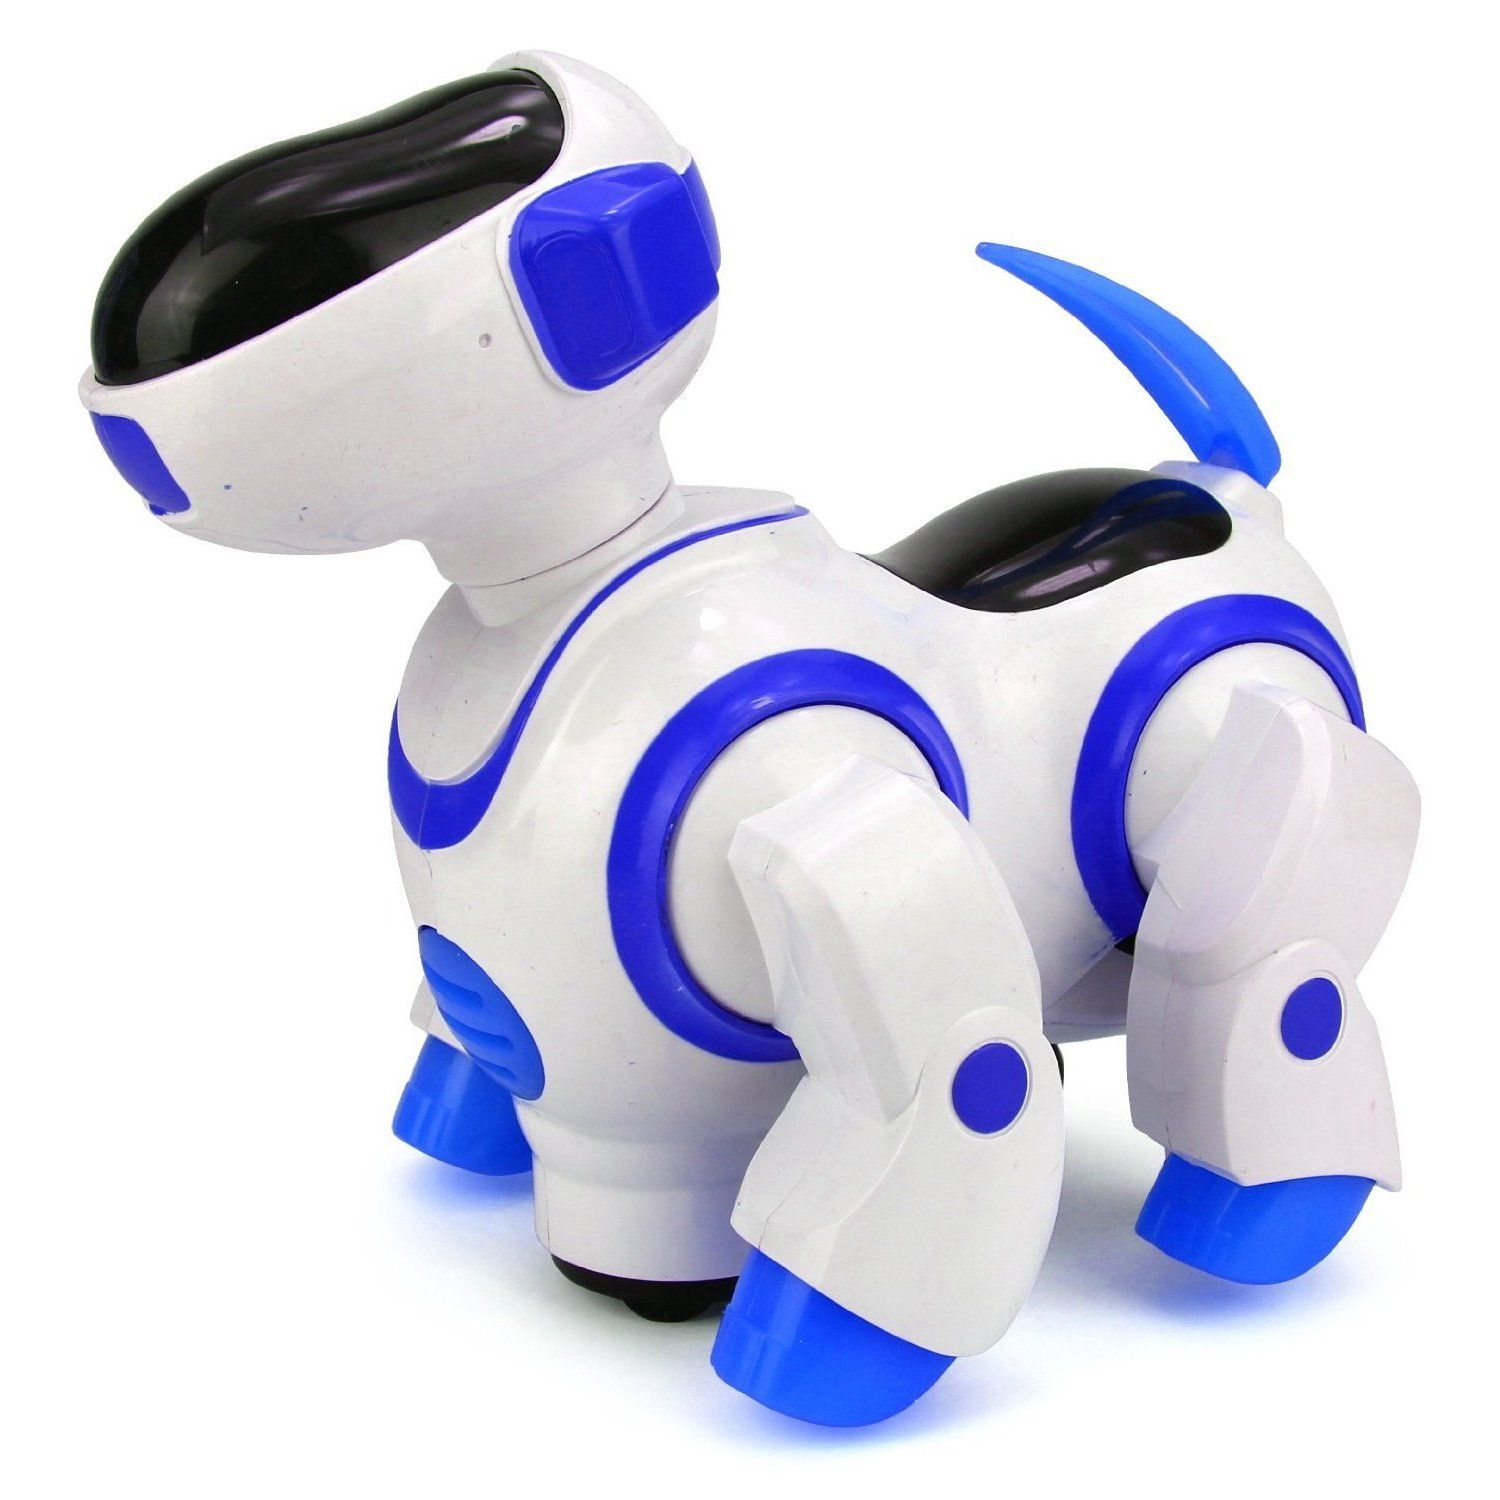 Watch this adorable battery operated dog immediately change